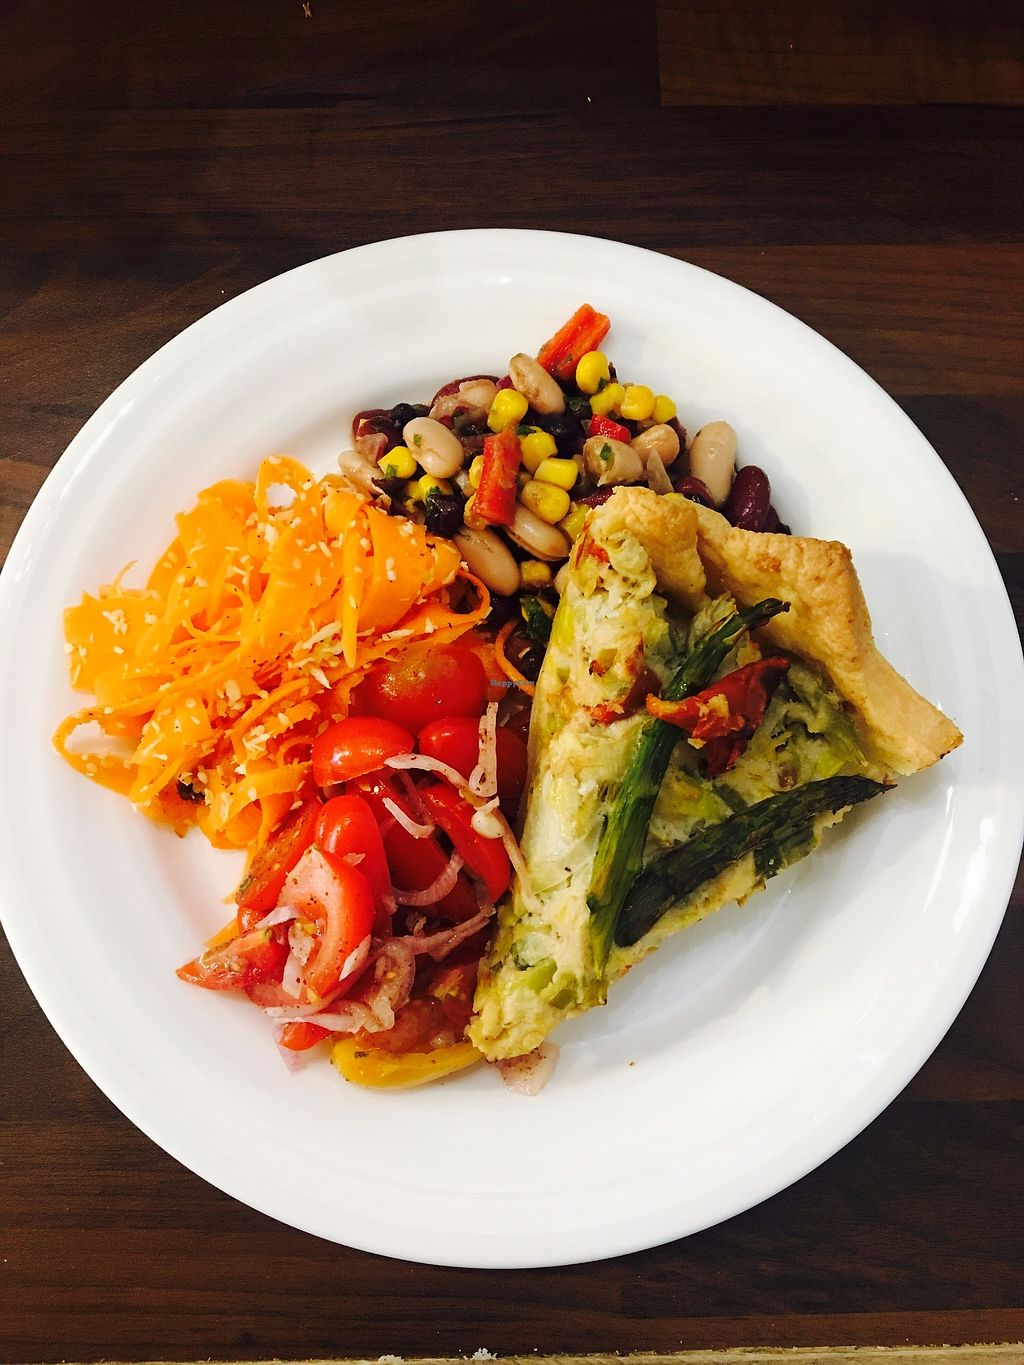 """Photo of Retreat Kitchen  by <a href=""""/members/profile/ClaireLangdon"""">ClaireLangdon</a> <br/>Quiche and Small Salad Plate  <br/> August 16, 2017  - <a href='/contact/abuse/image/87349/293377'>Report</a>"""